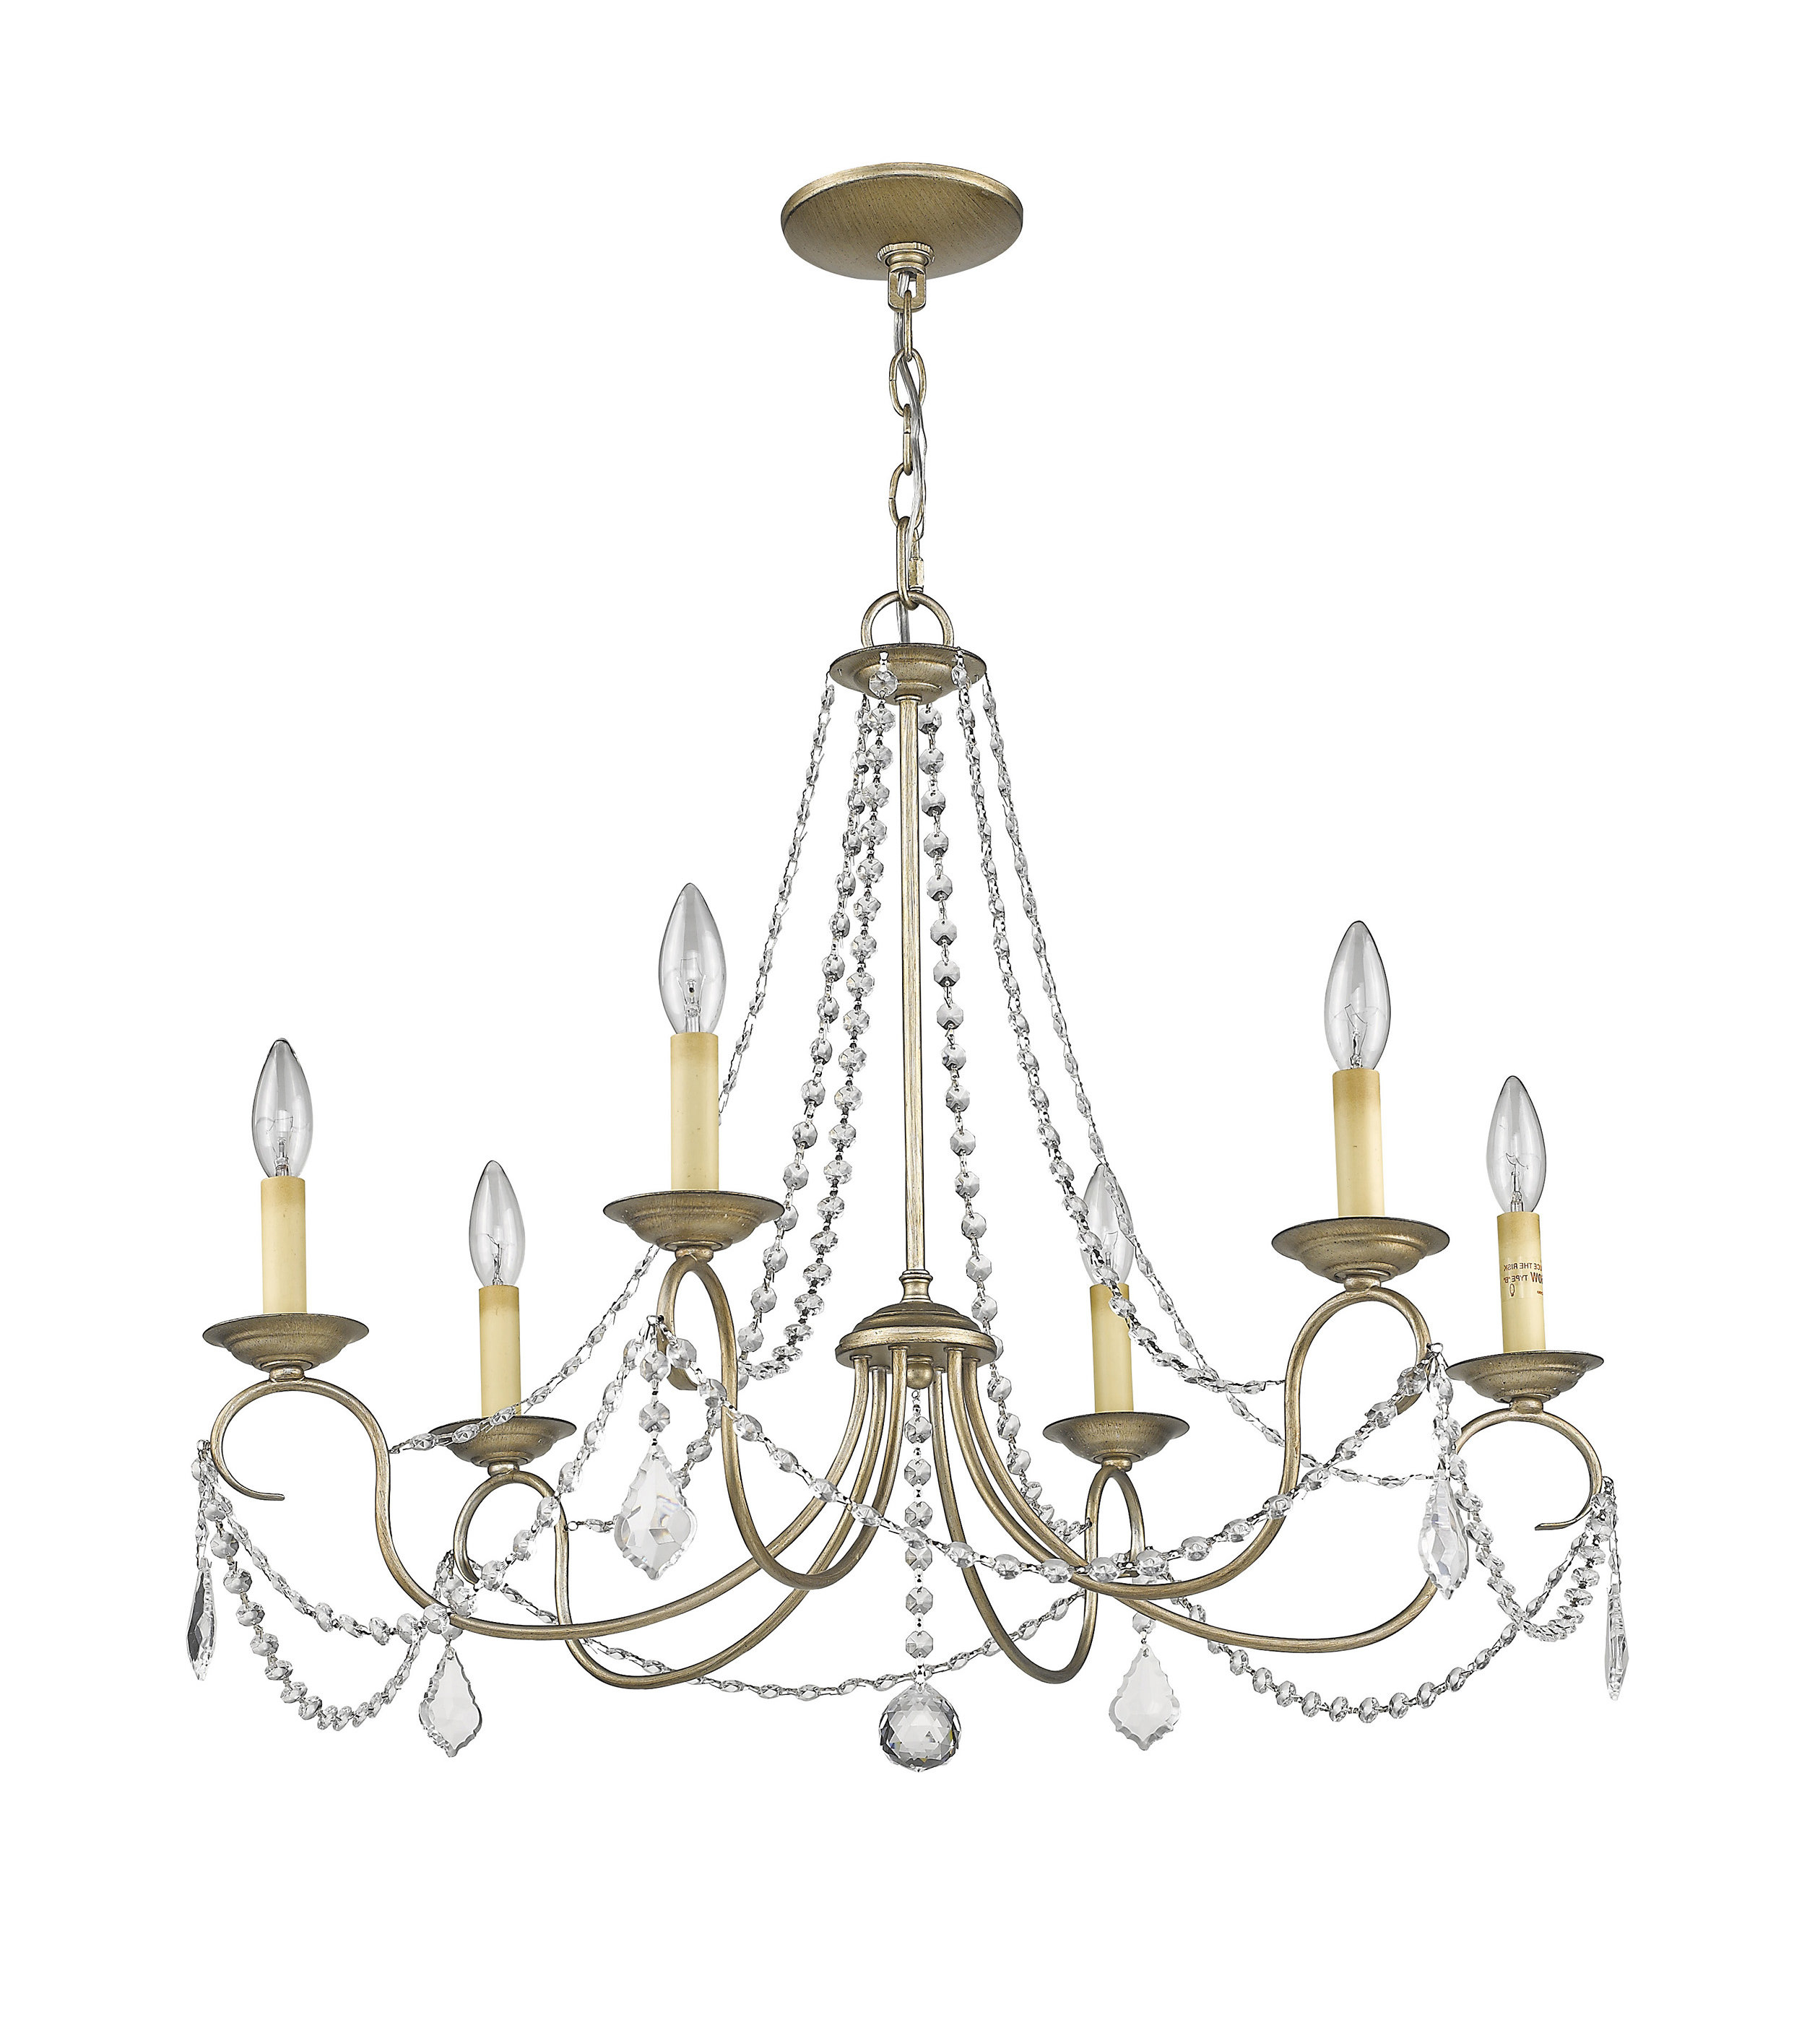 2019 Devana 6 Light Candle Style Chandelier With Regard To Diaz 6 Light Candle Style Chandeliers (View 1 of 25)